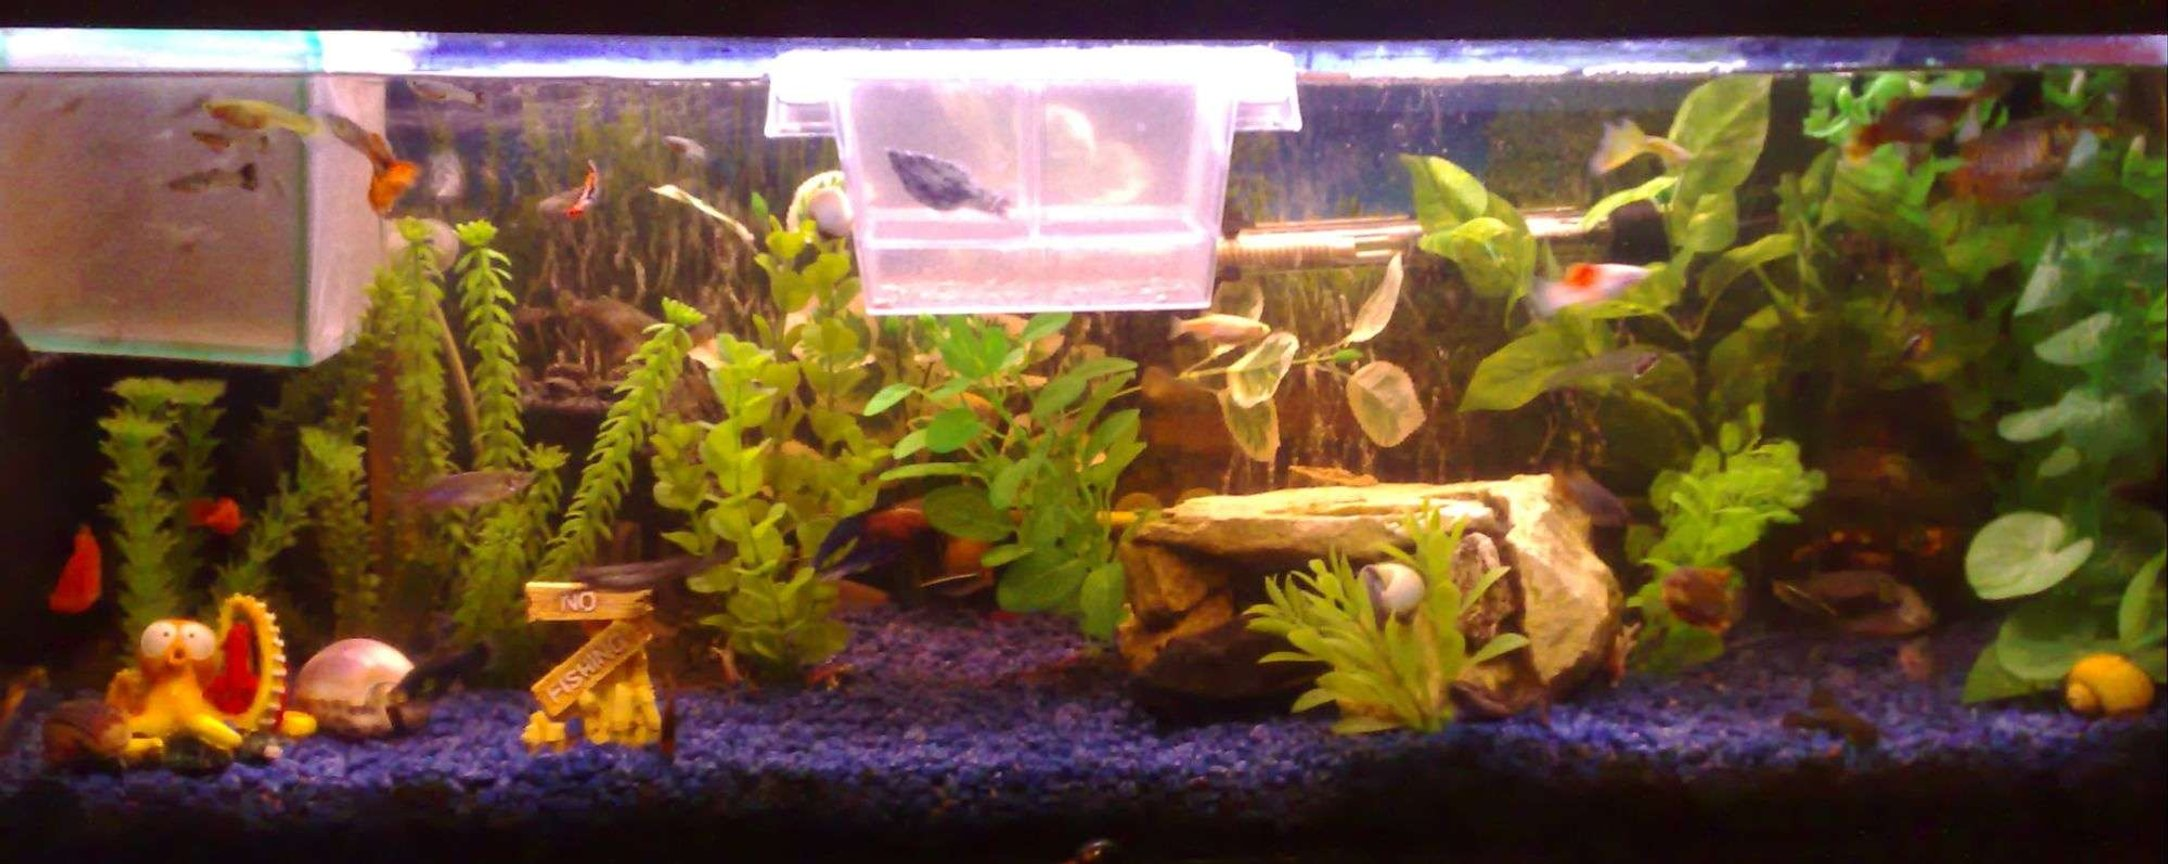 22 gallons freshwater fish tank (mostly fish and non-living decorations) - just added some new plants